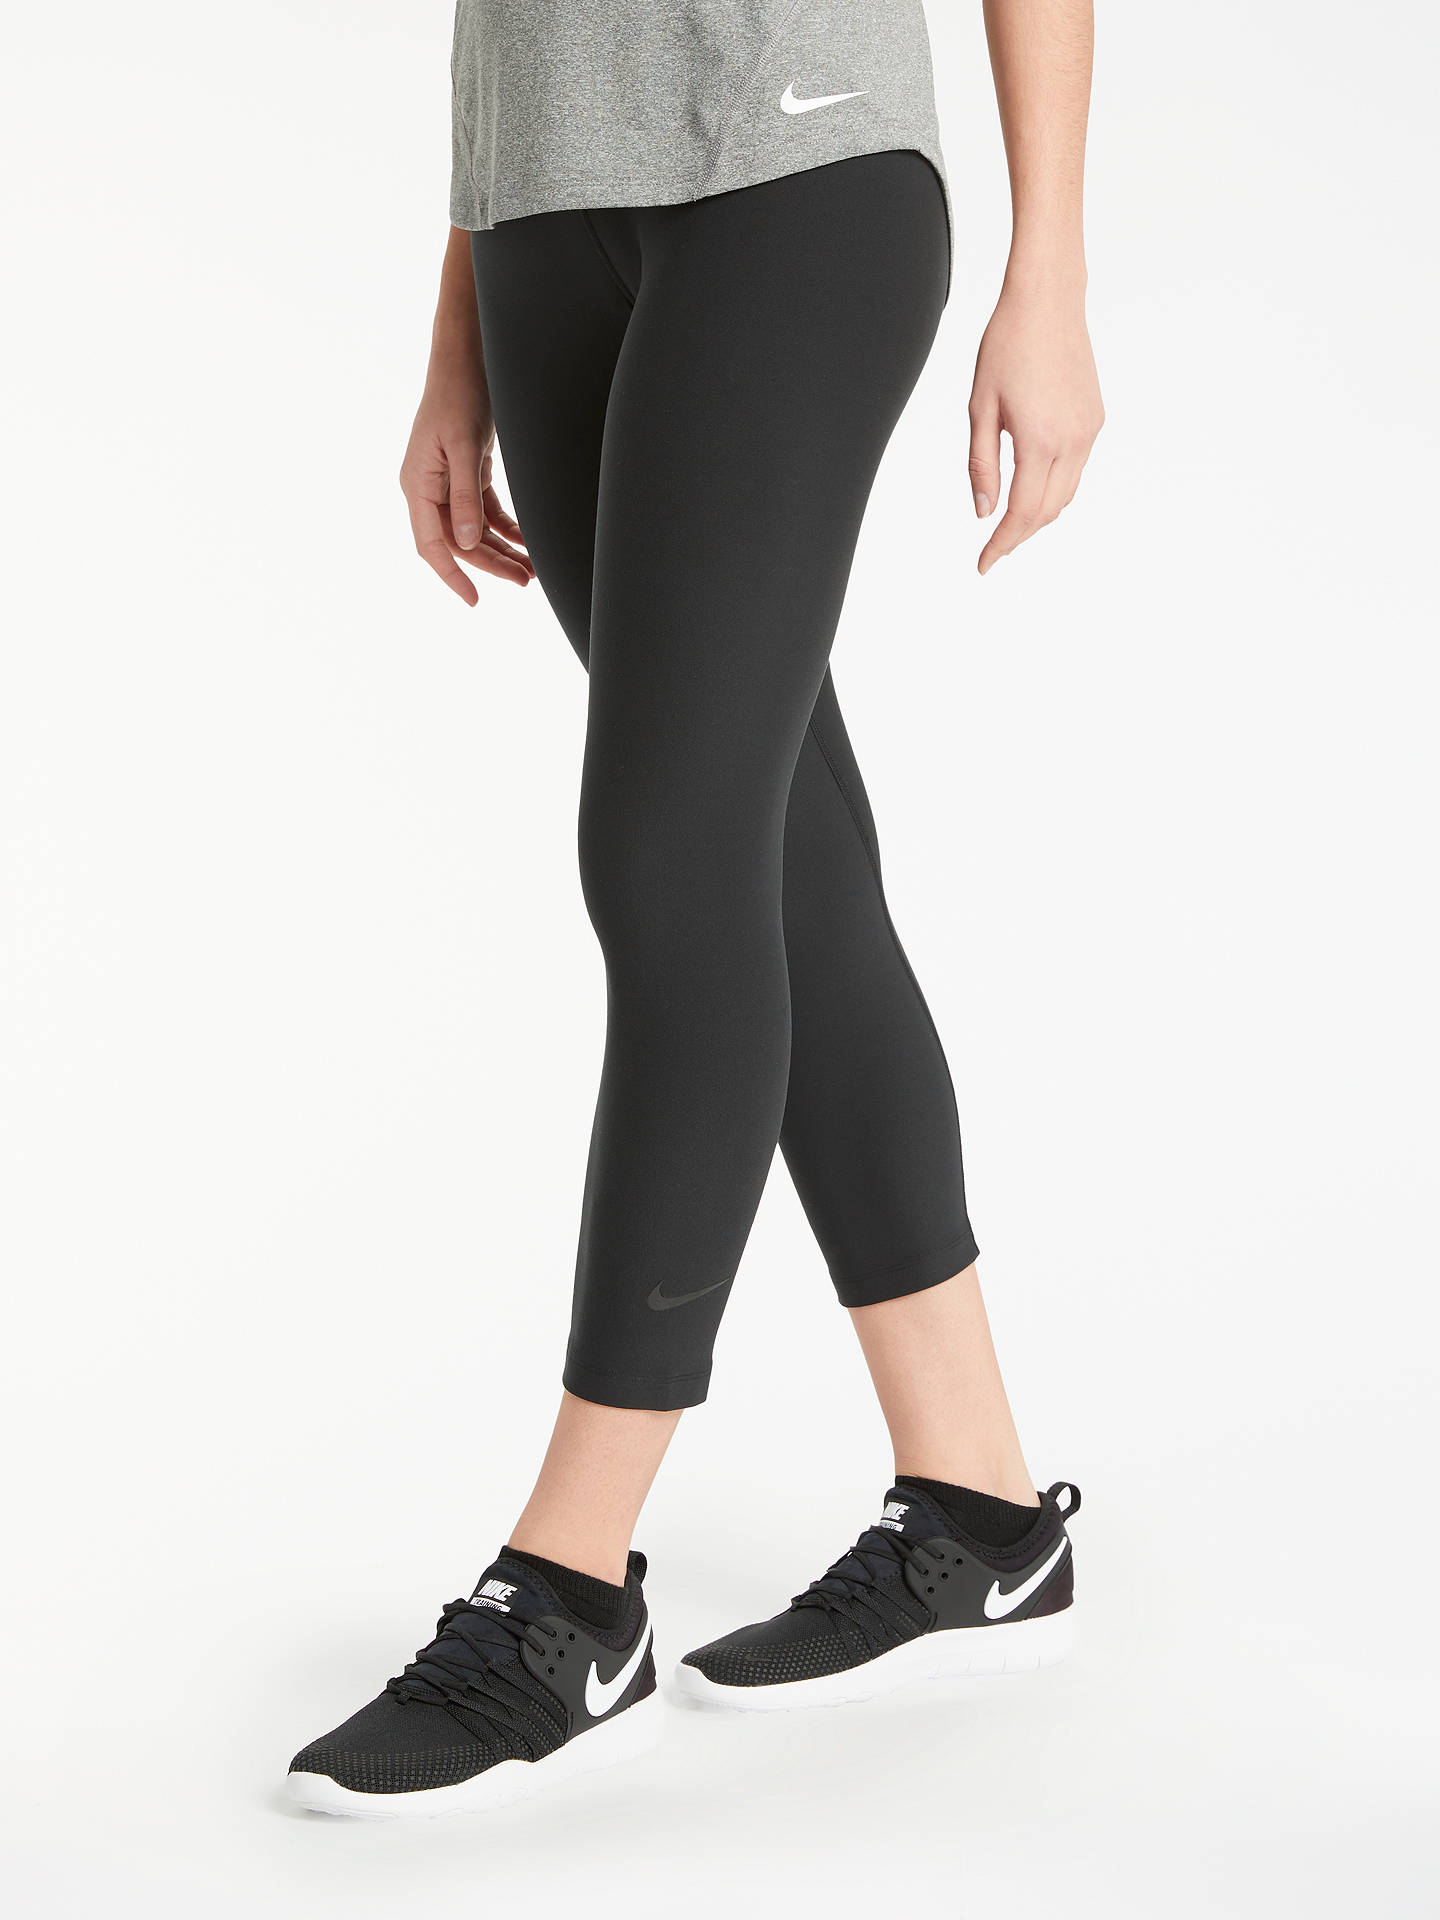 d11e7de6e9703 Buy Nike Sculpt Hyper Training Crops, Black, XS Online at johnlewis.com ...